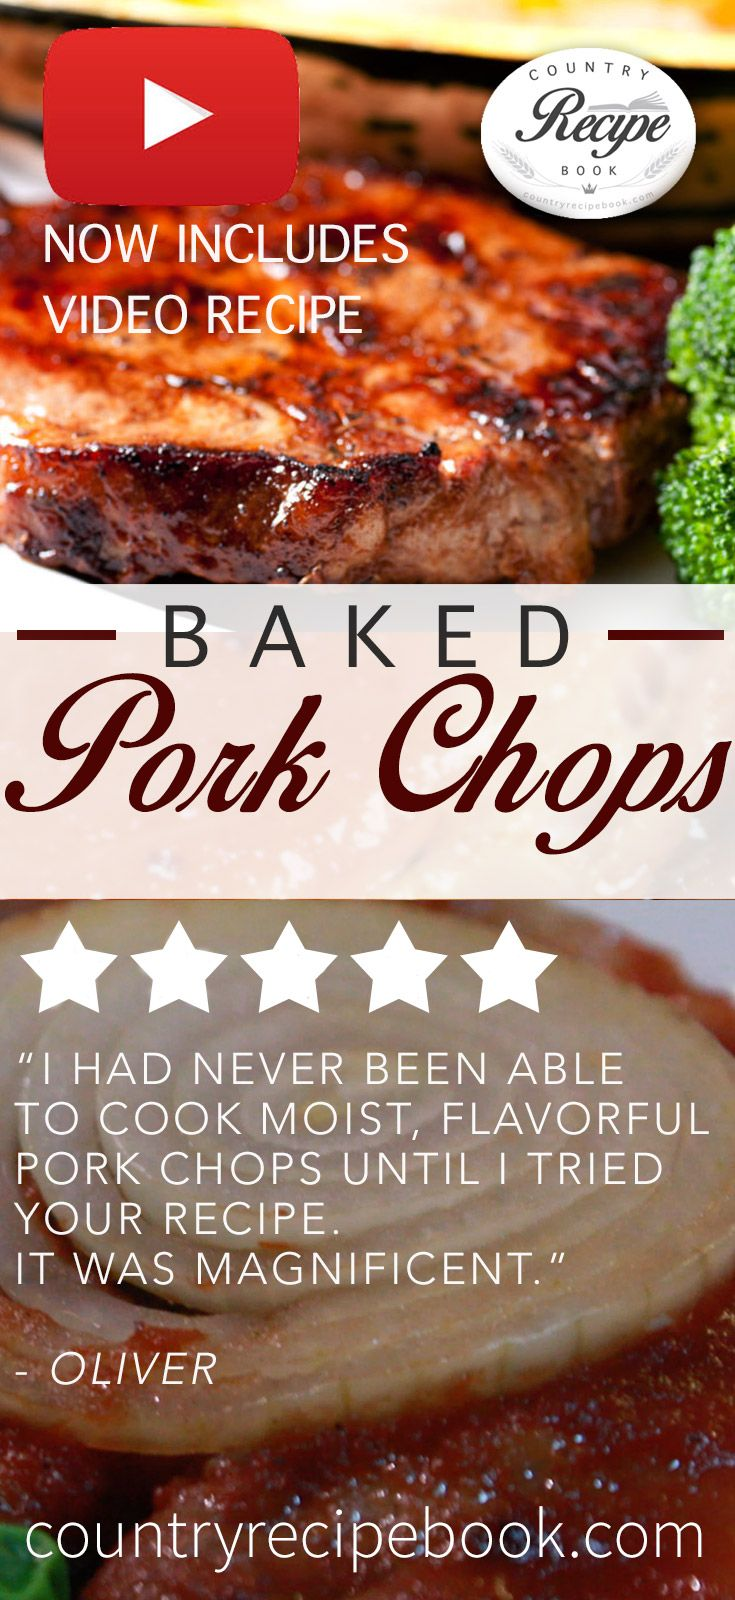 Country Style Baked Pork Chops Make Epic, Moist